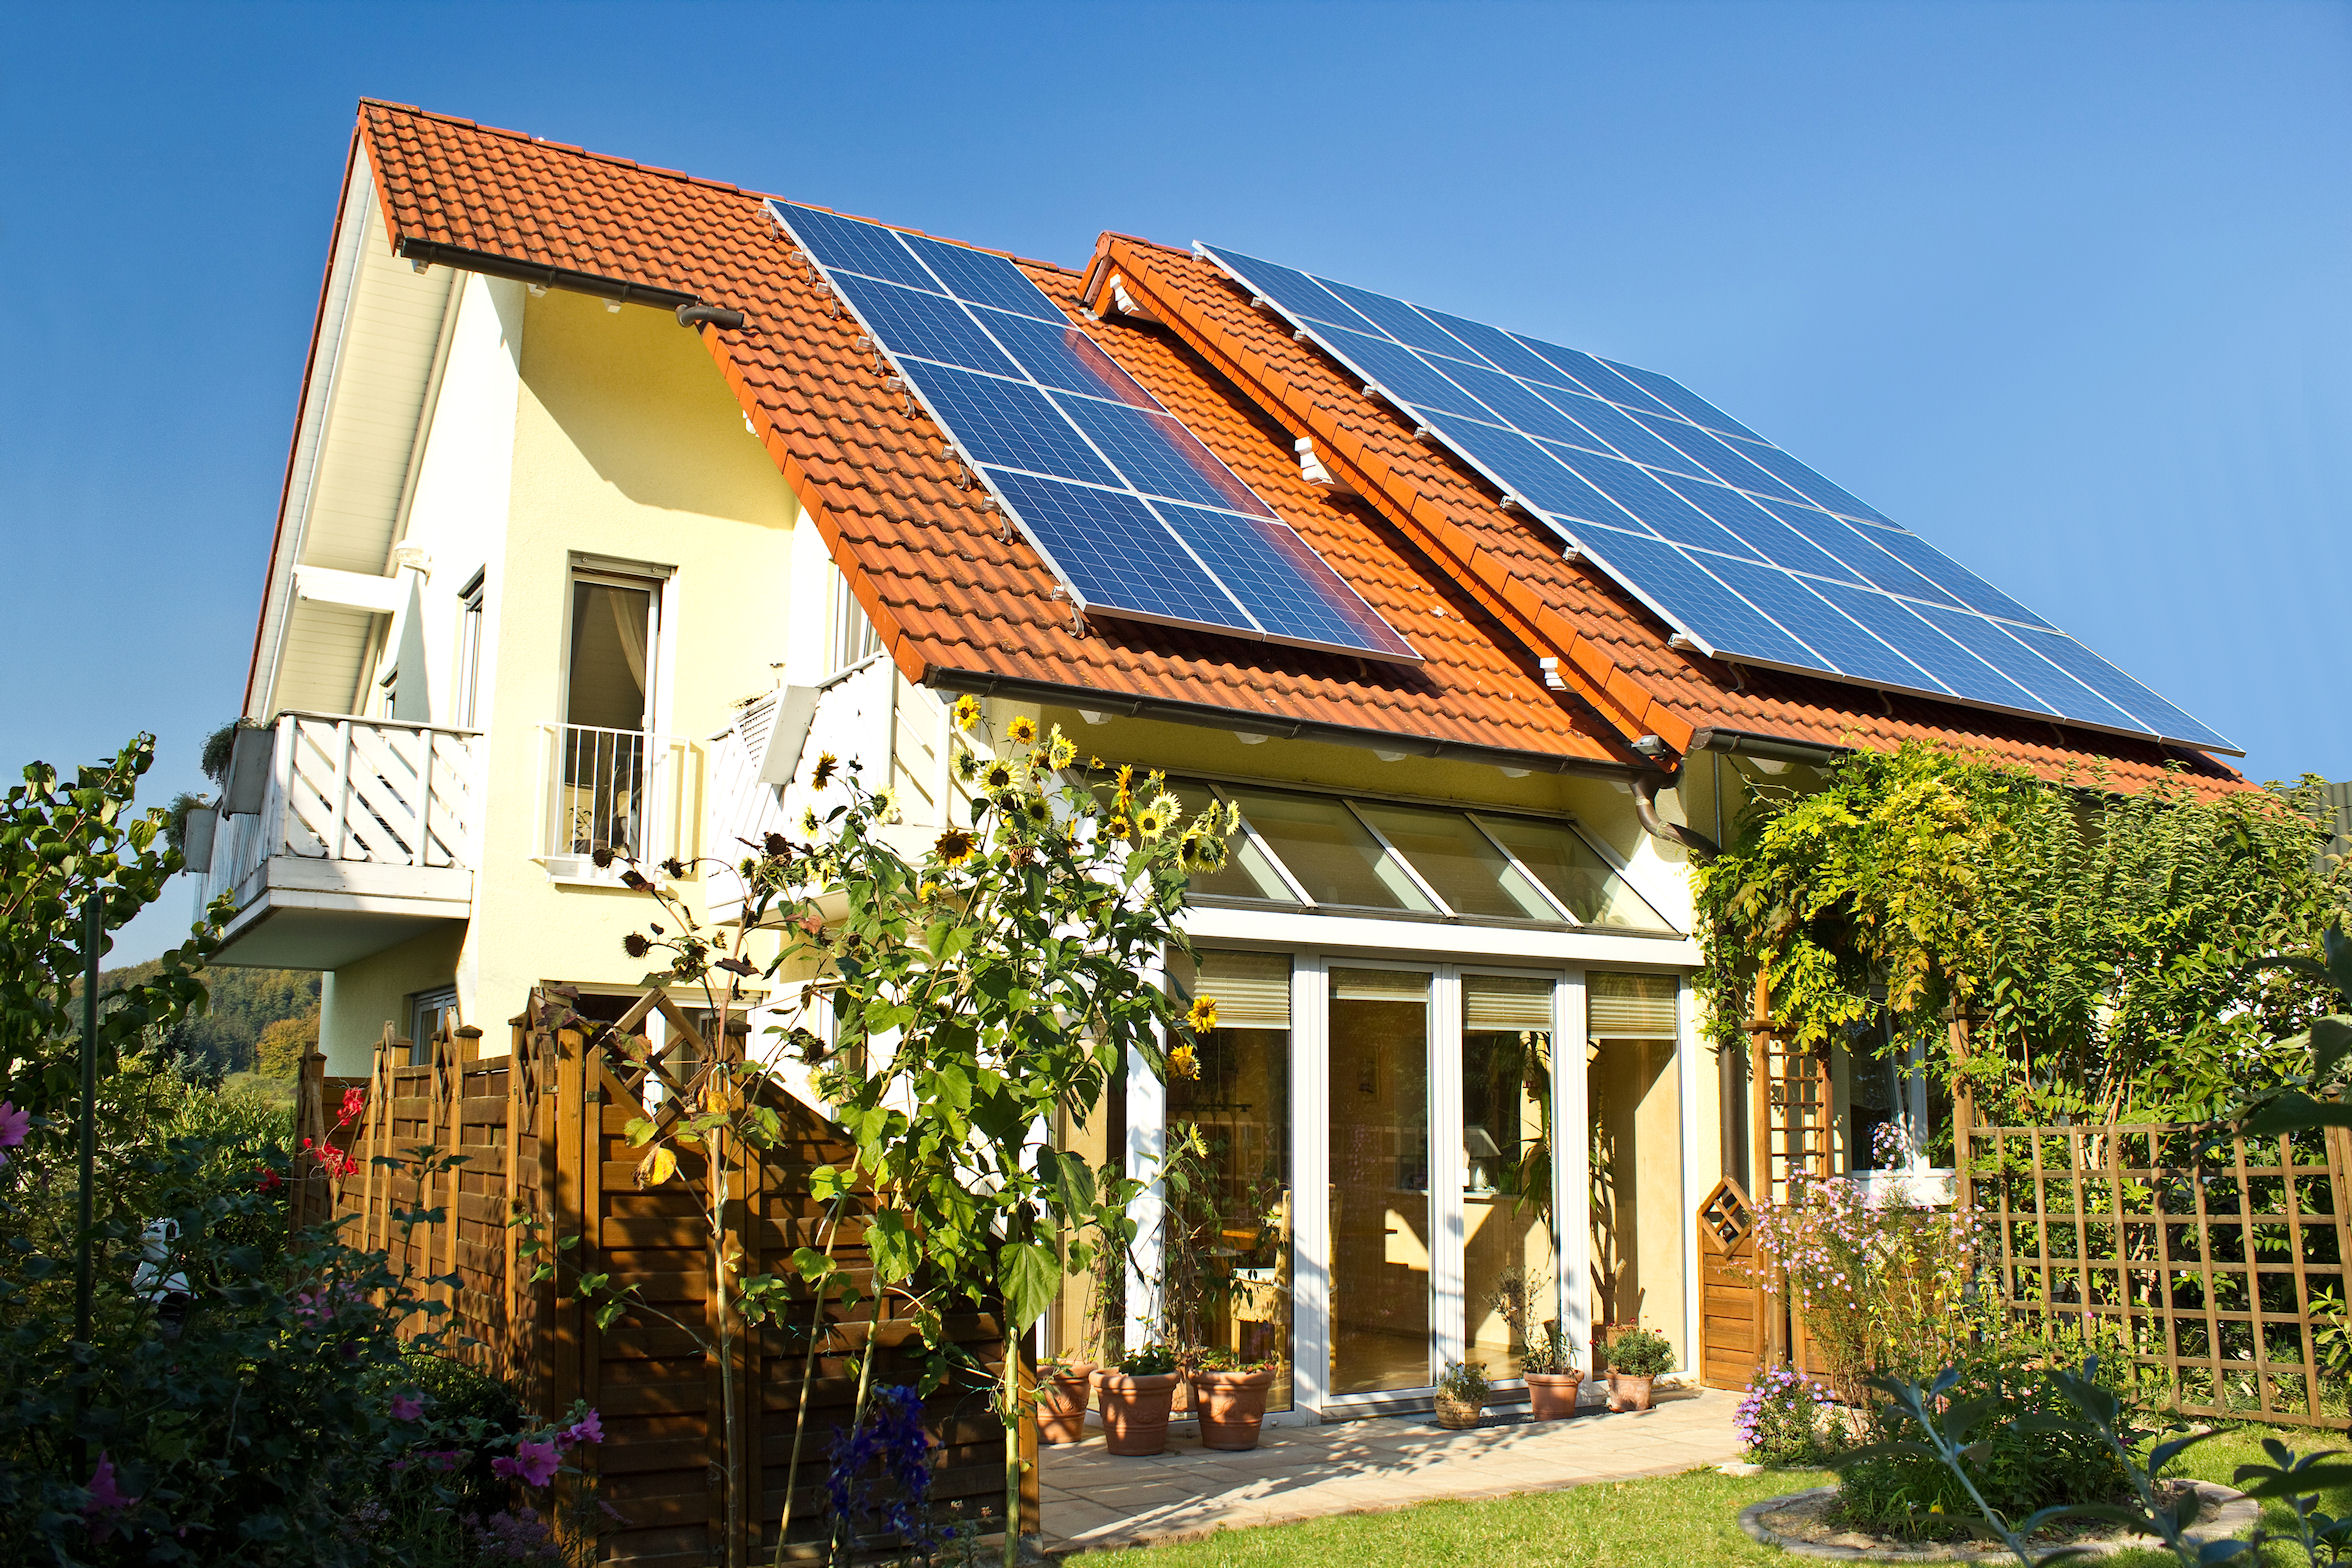 https://ritecuk.files.wordpress.com/2014/02/solar-panel-roof.jpg